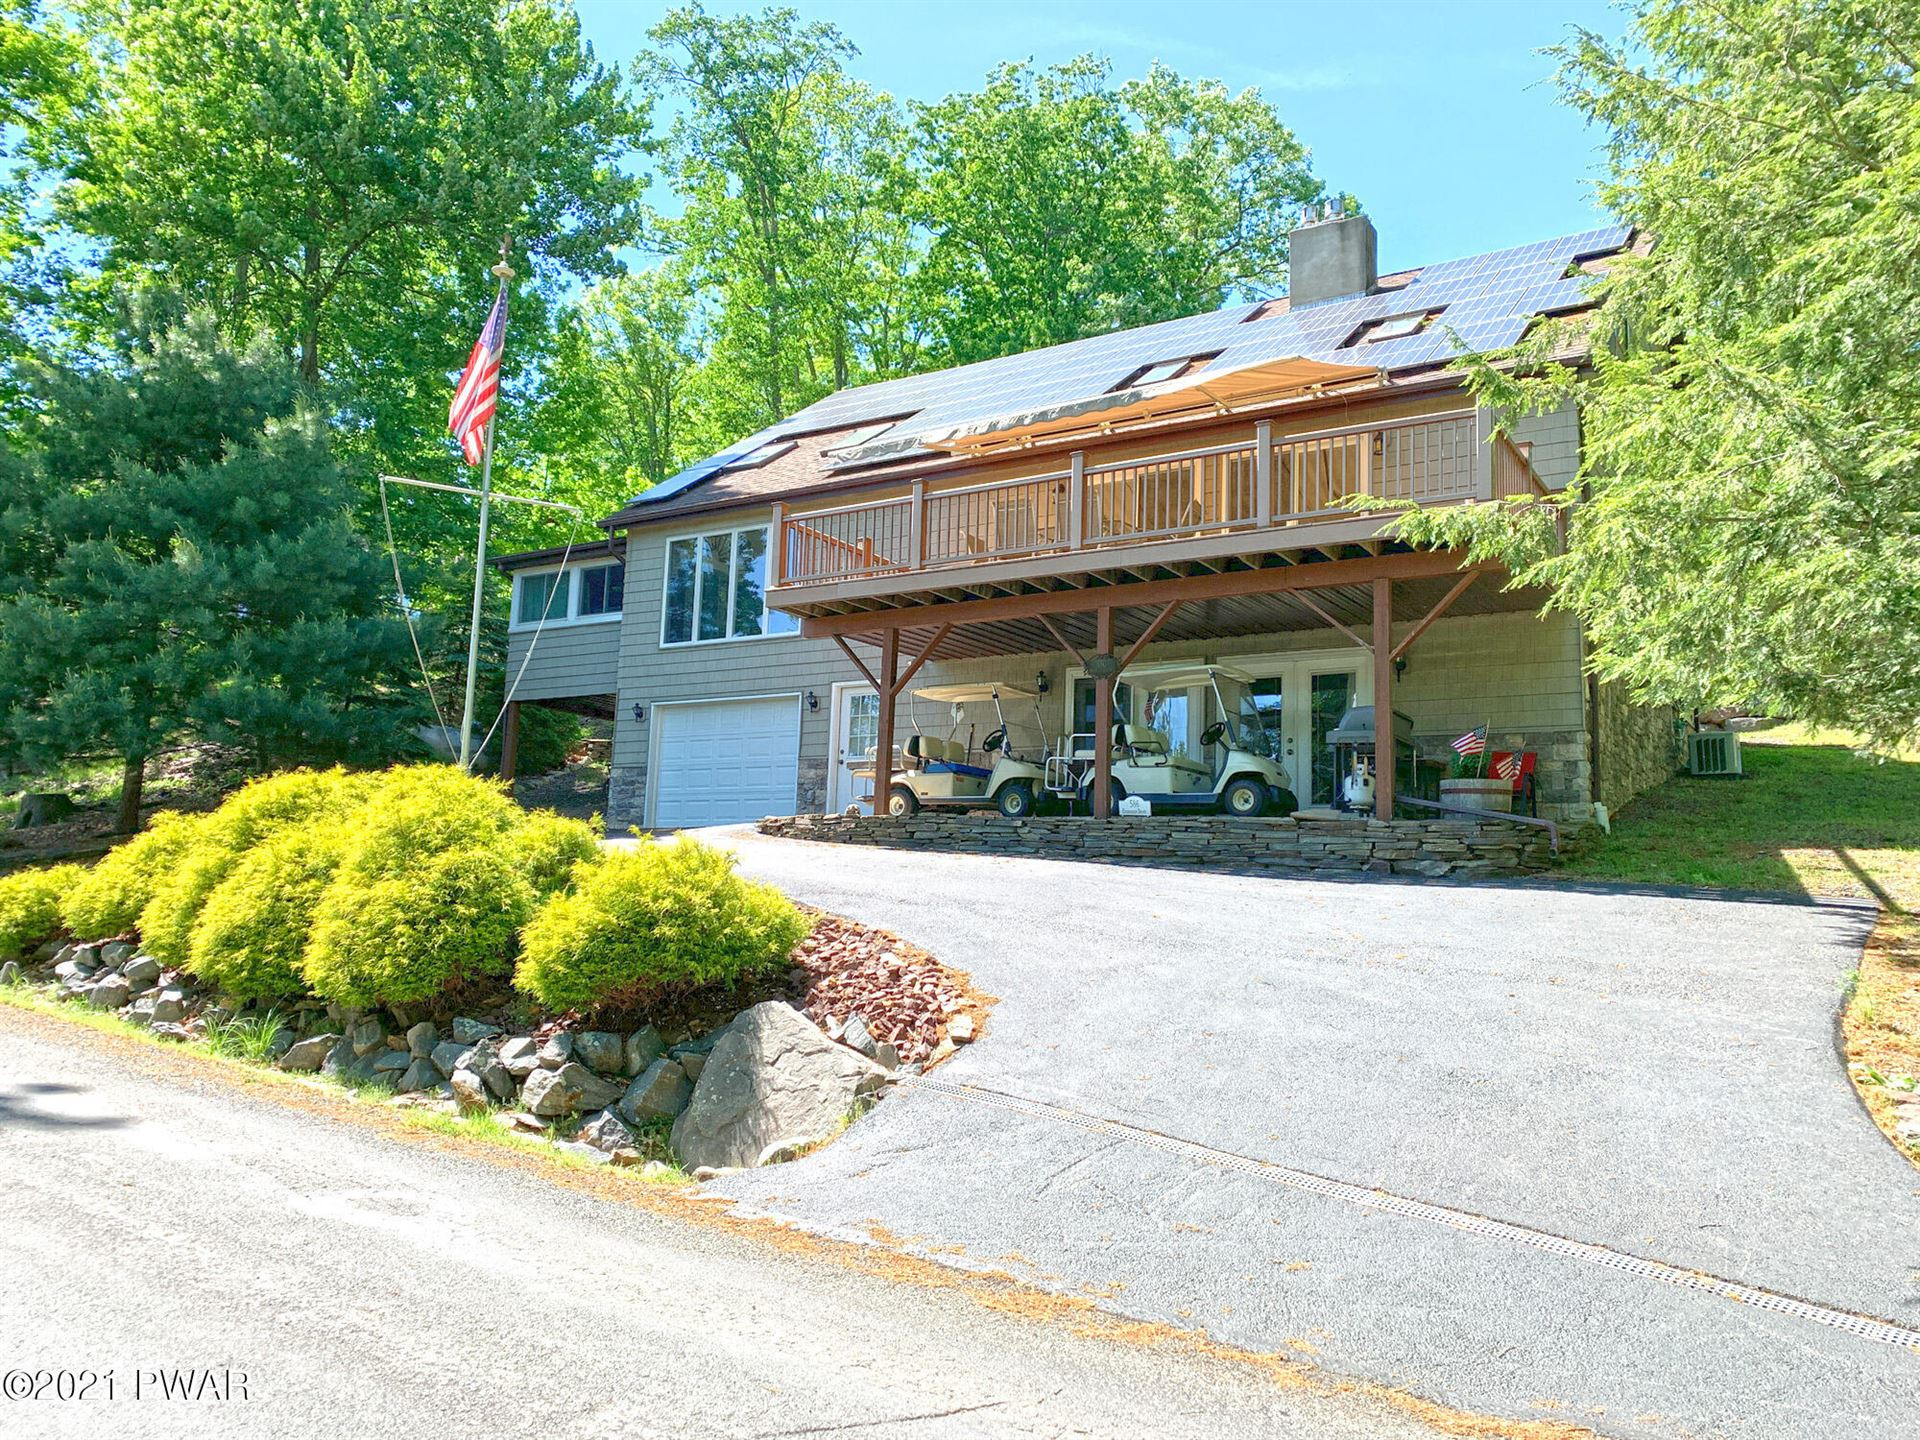 Photo of 586 Evergreen Dr, Lakeville, PA 18438 (MLS # 21-174)